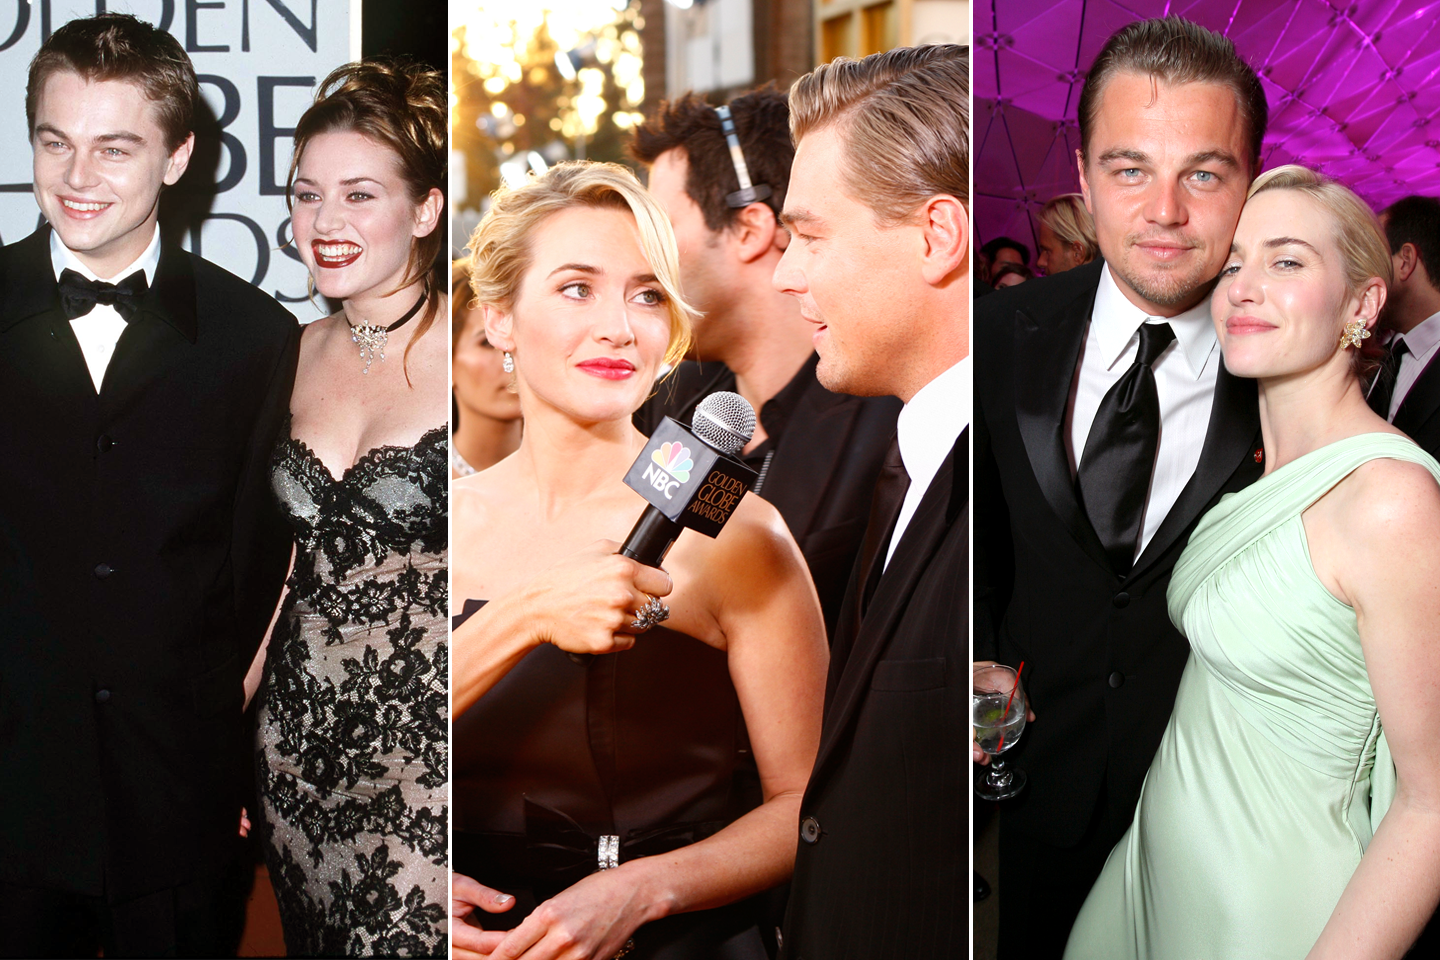 did leonardo dicaprio dating kate winslet The complete dating history of leonardo dicaprio chronicling all of his alleged girlfriends and hookups over the years kate winslet, linnea dietrichson.